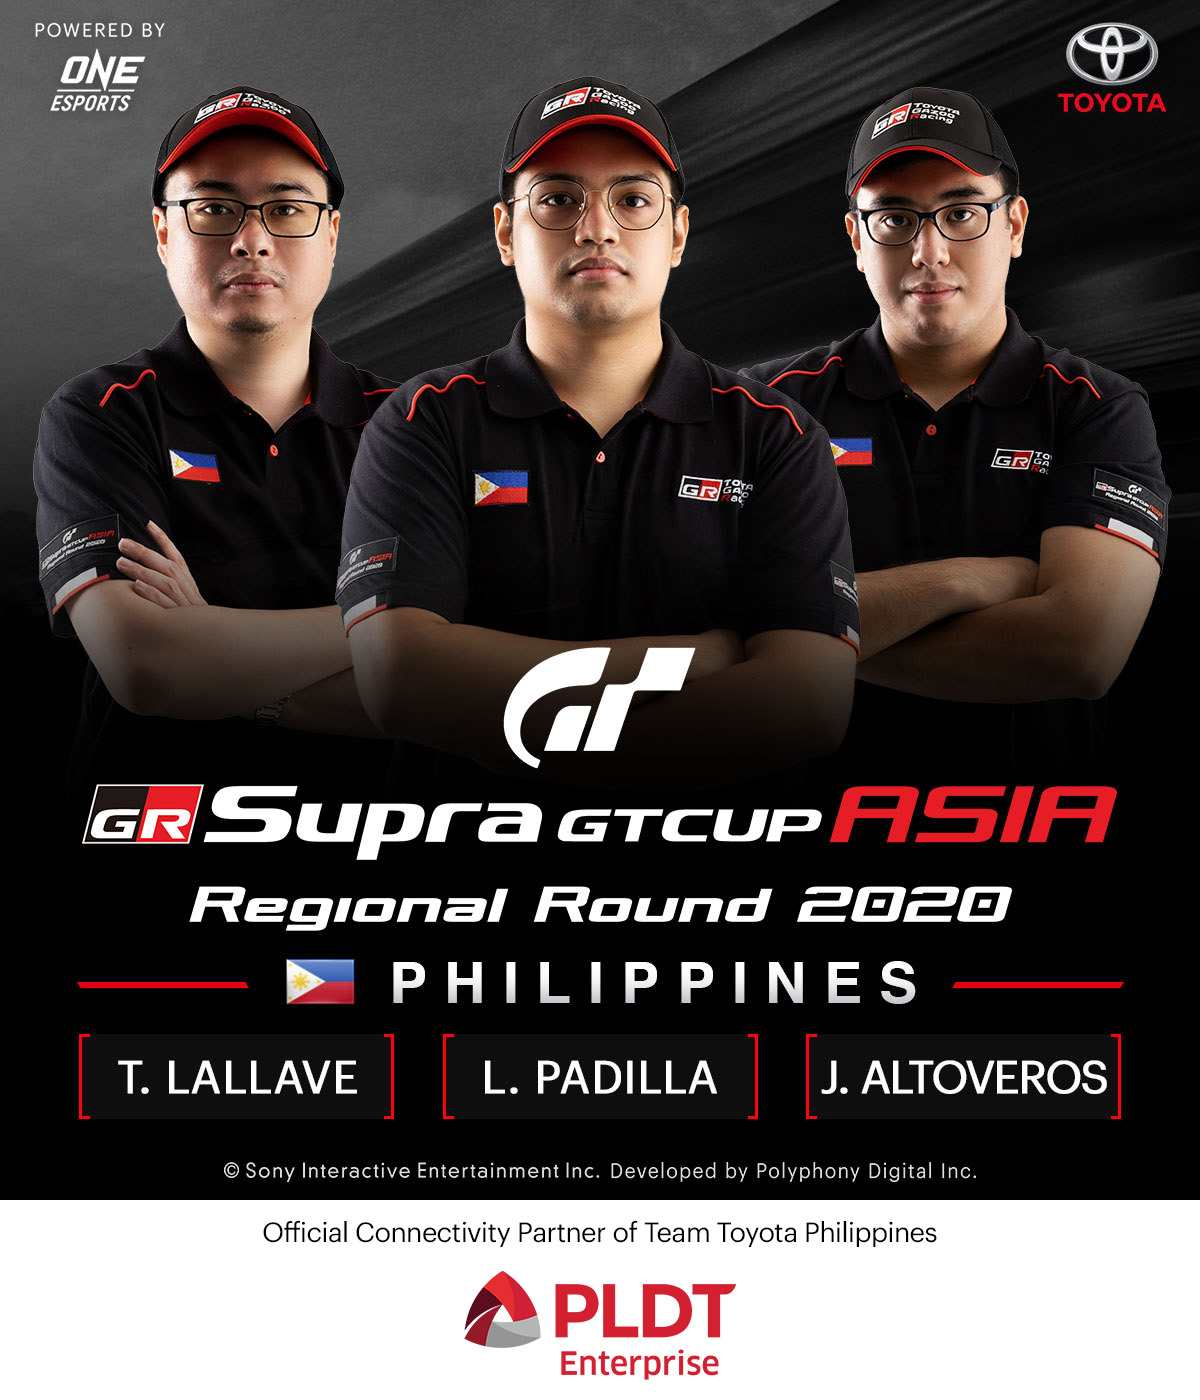 GR SUPRA GT CUP ASIA FINALS TEAM PHILIPPINES